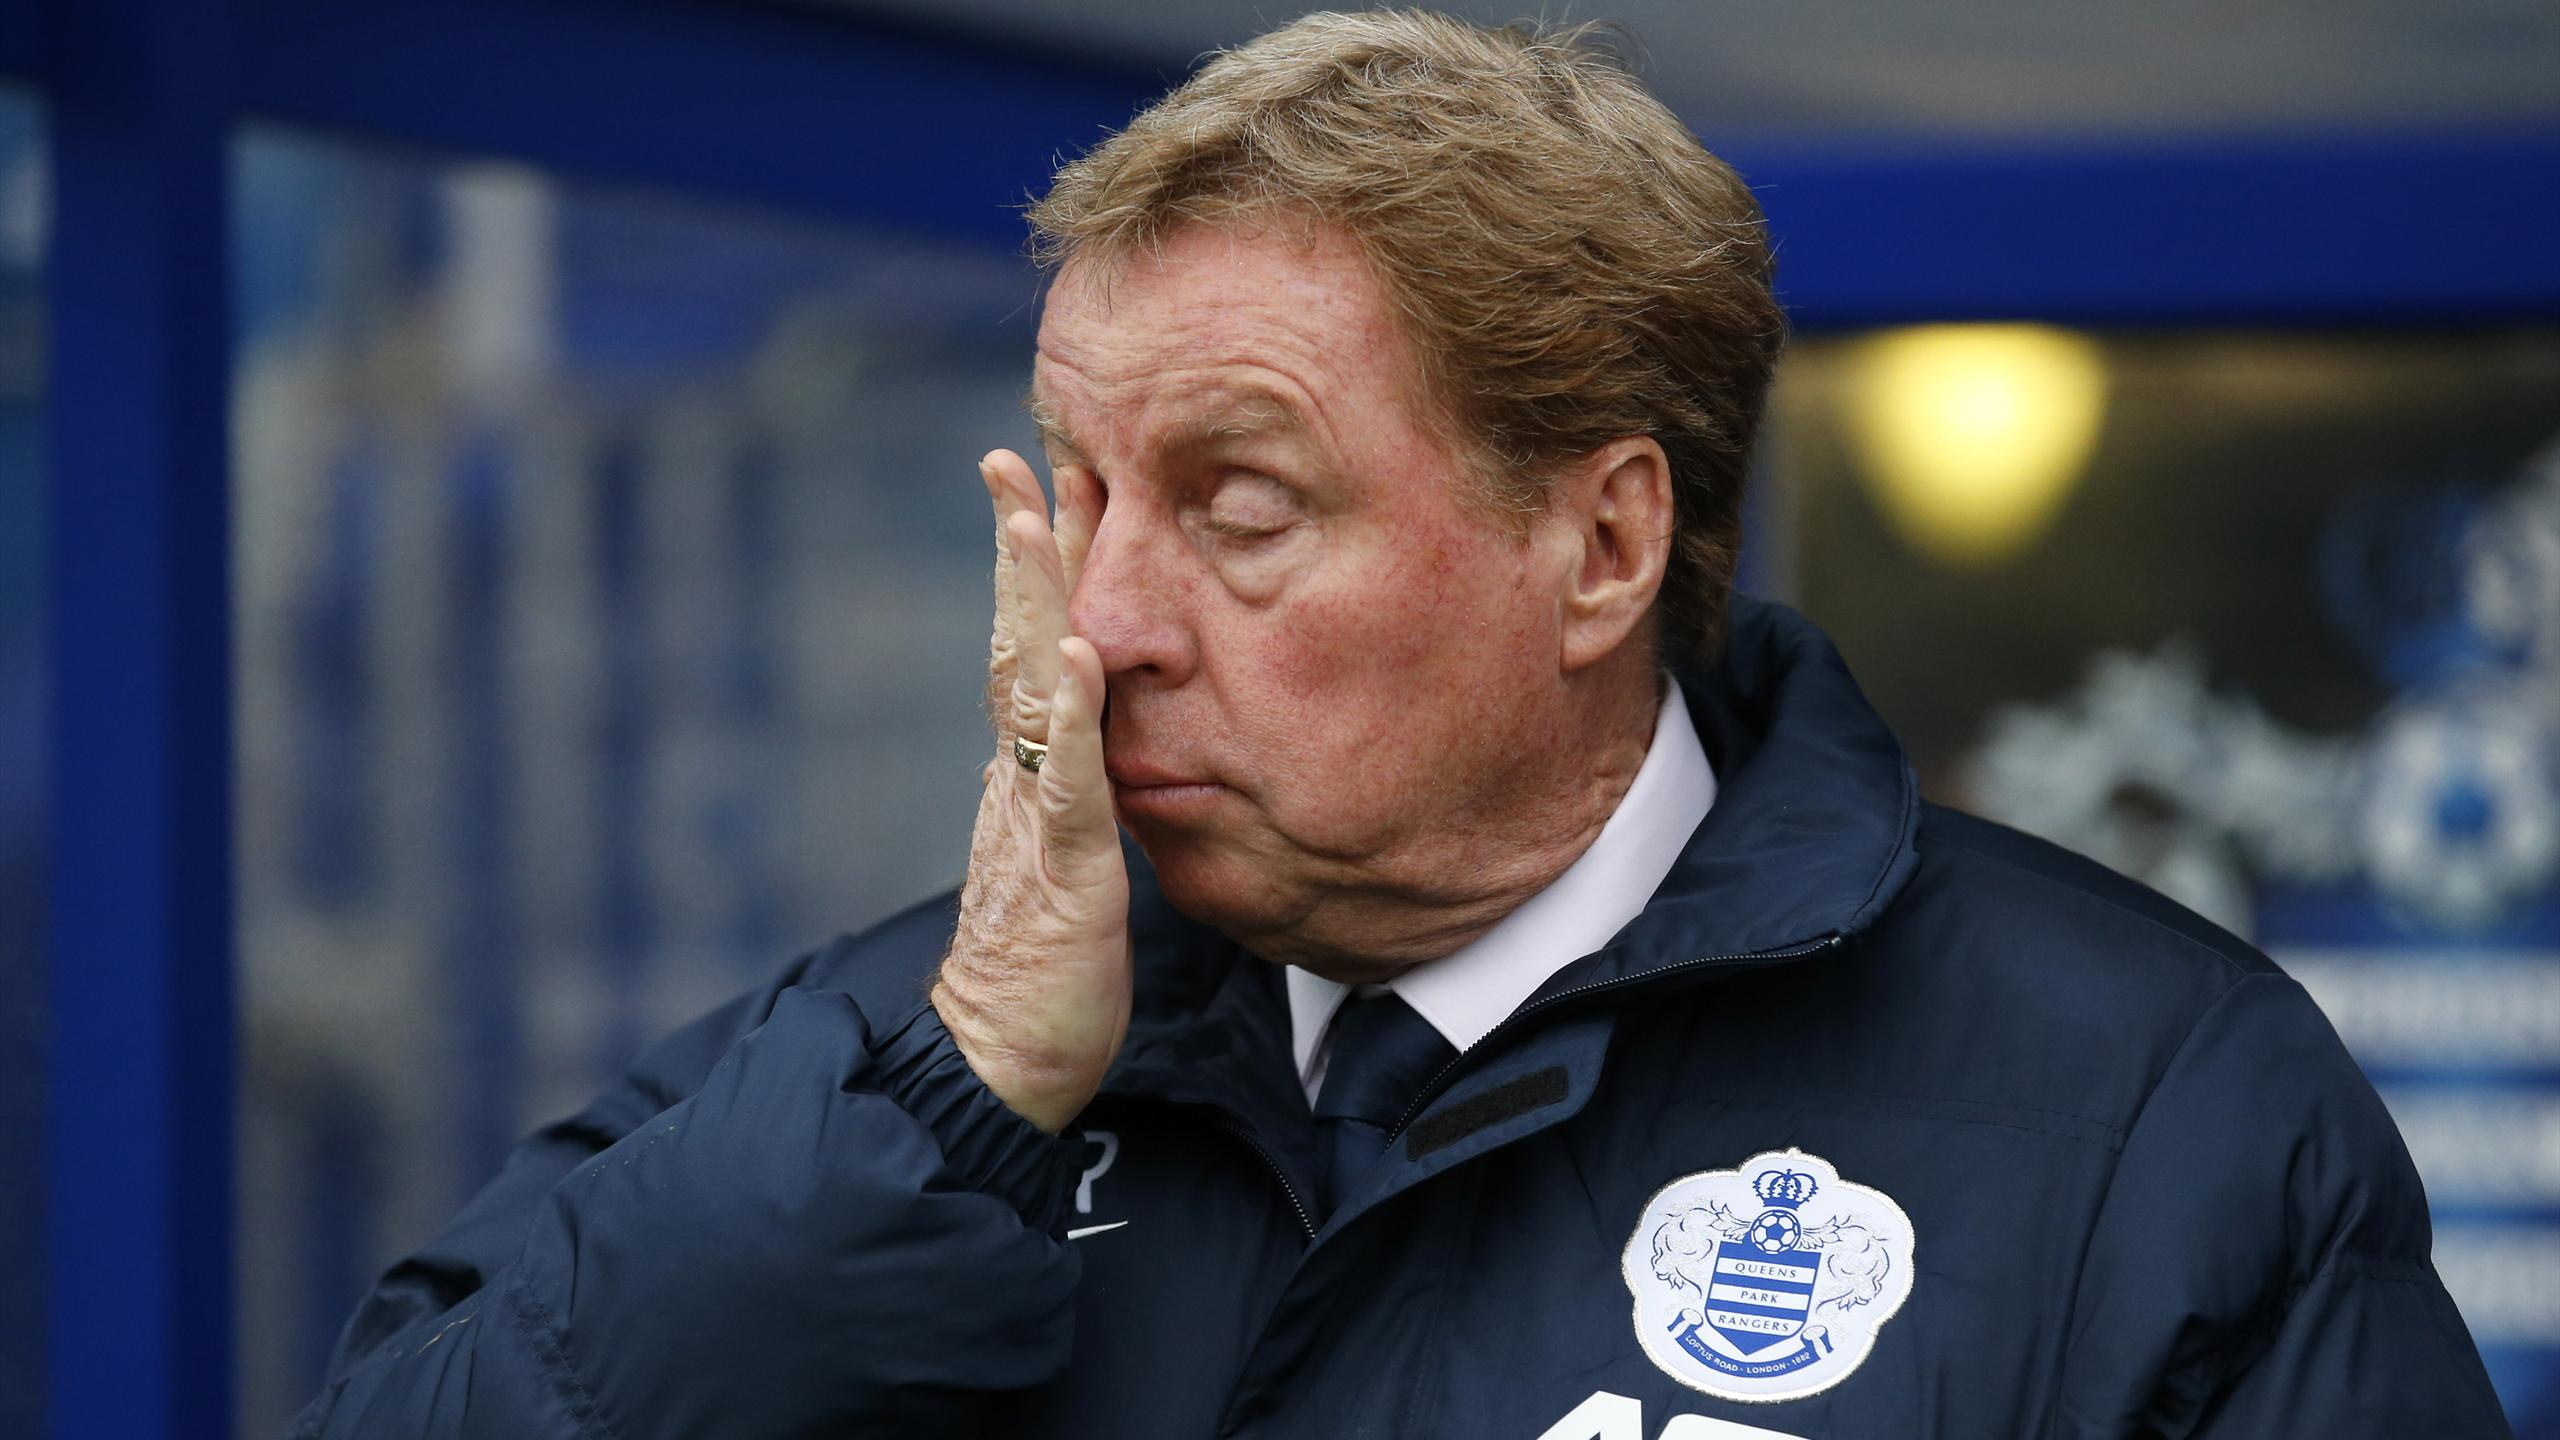 Harry Redknapp while at QPR